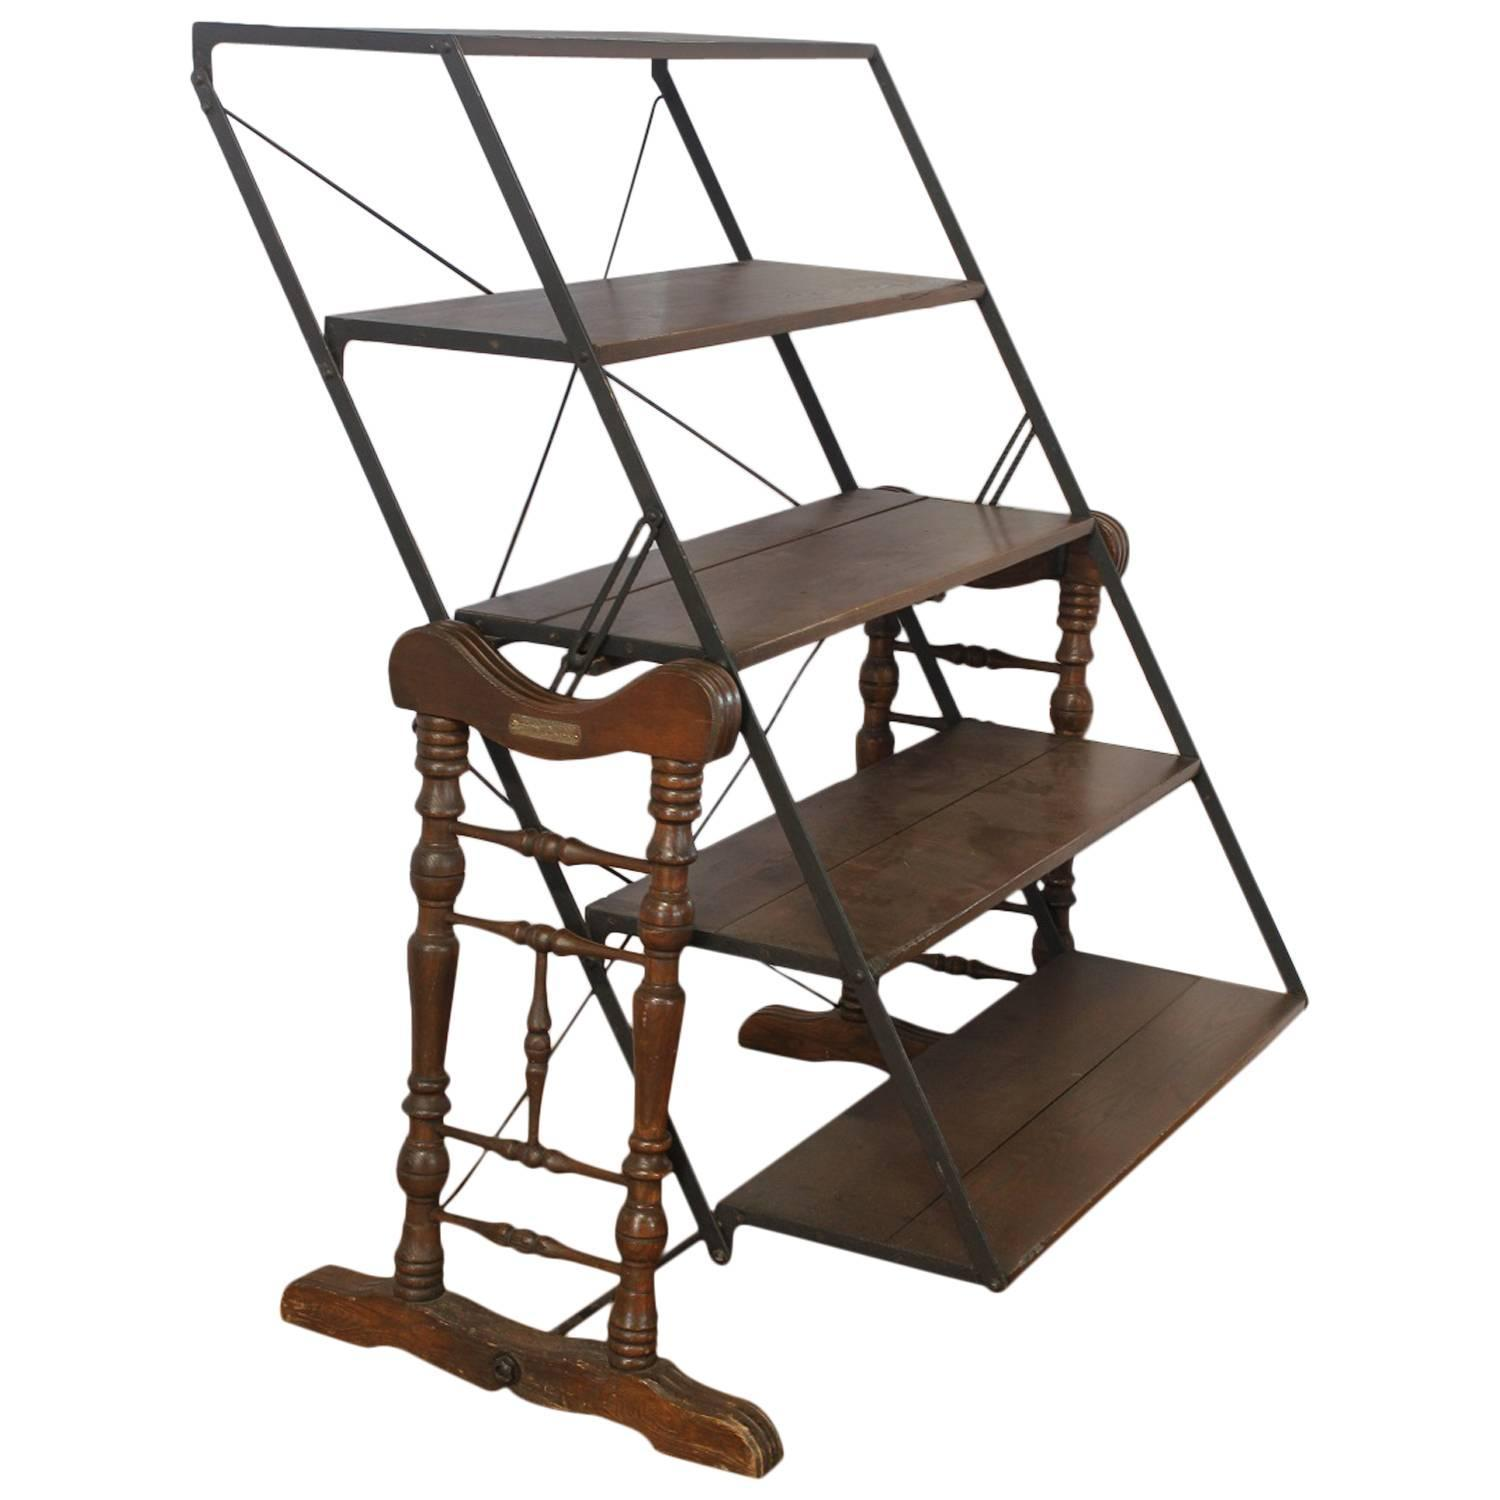 Antique Country Store Bakers ShelvesTable By Yesbera Co Toledo For Sale At 1stdibs